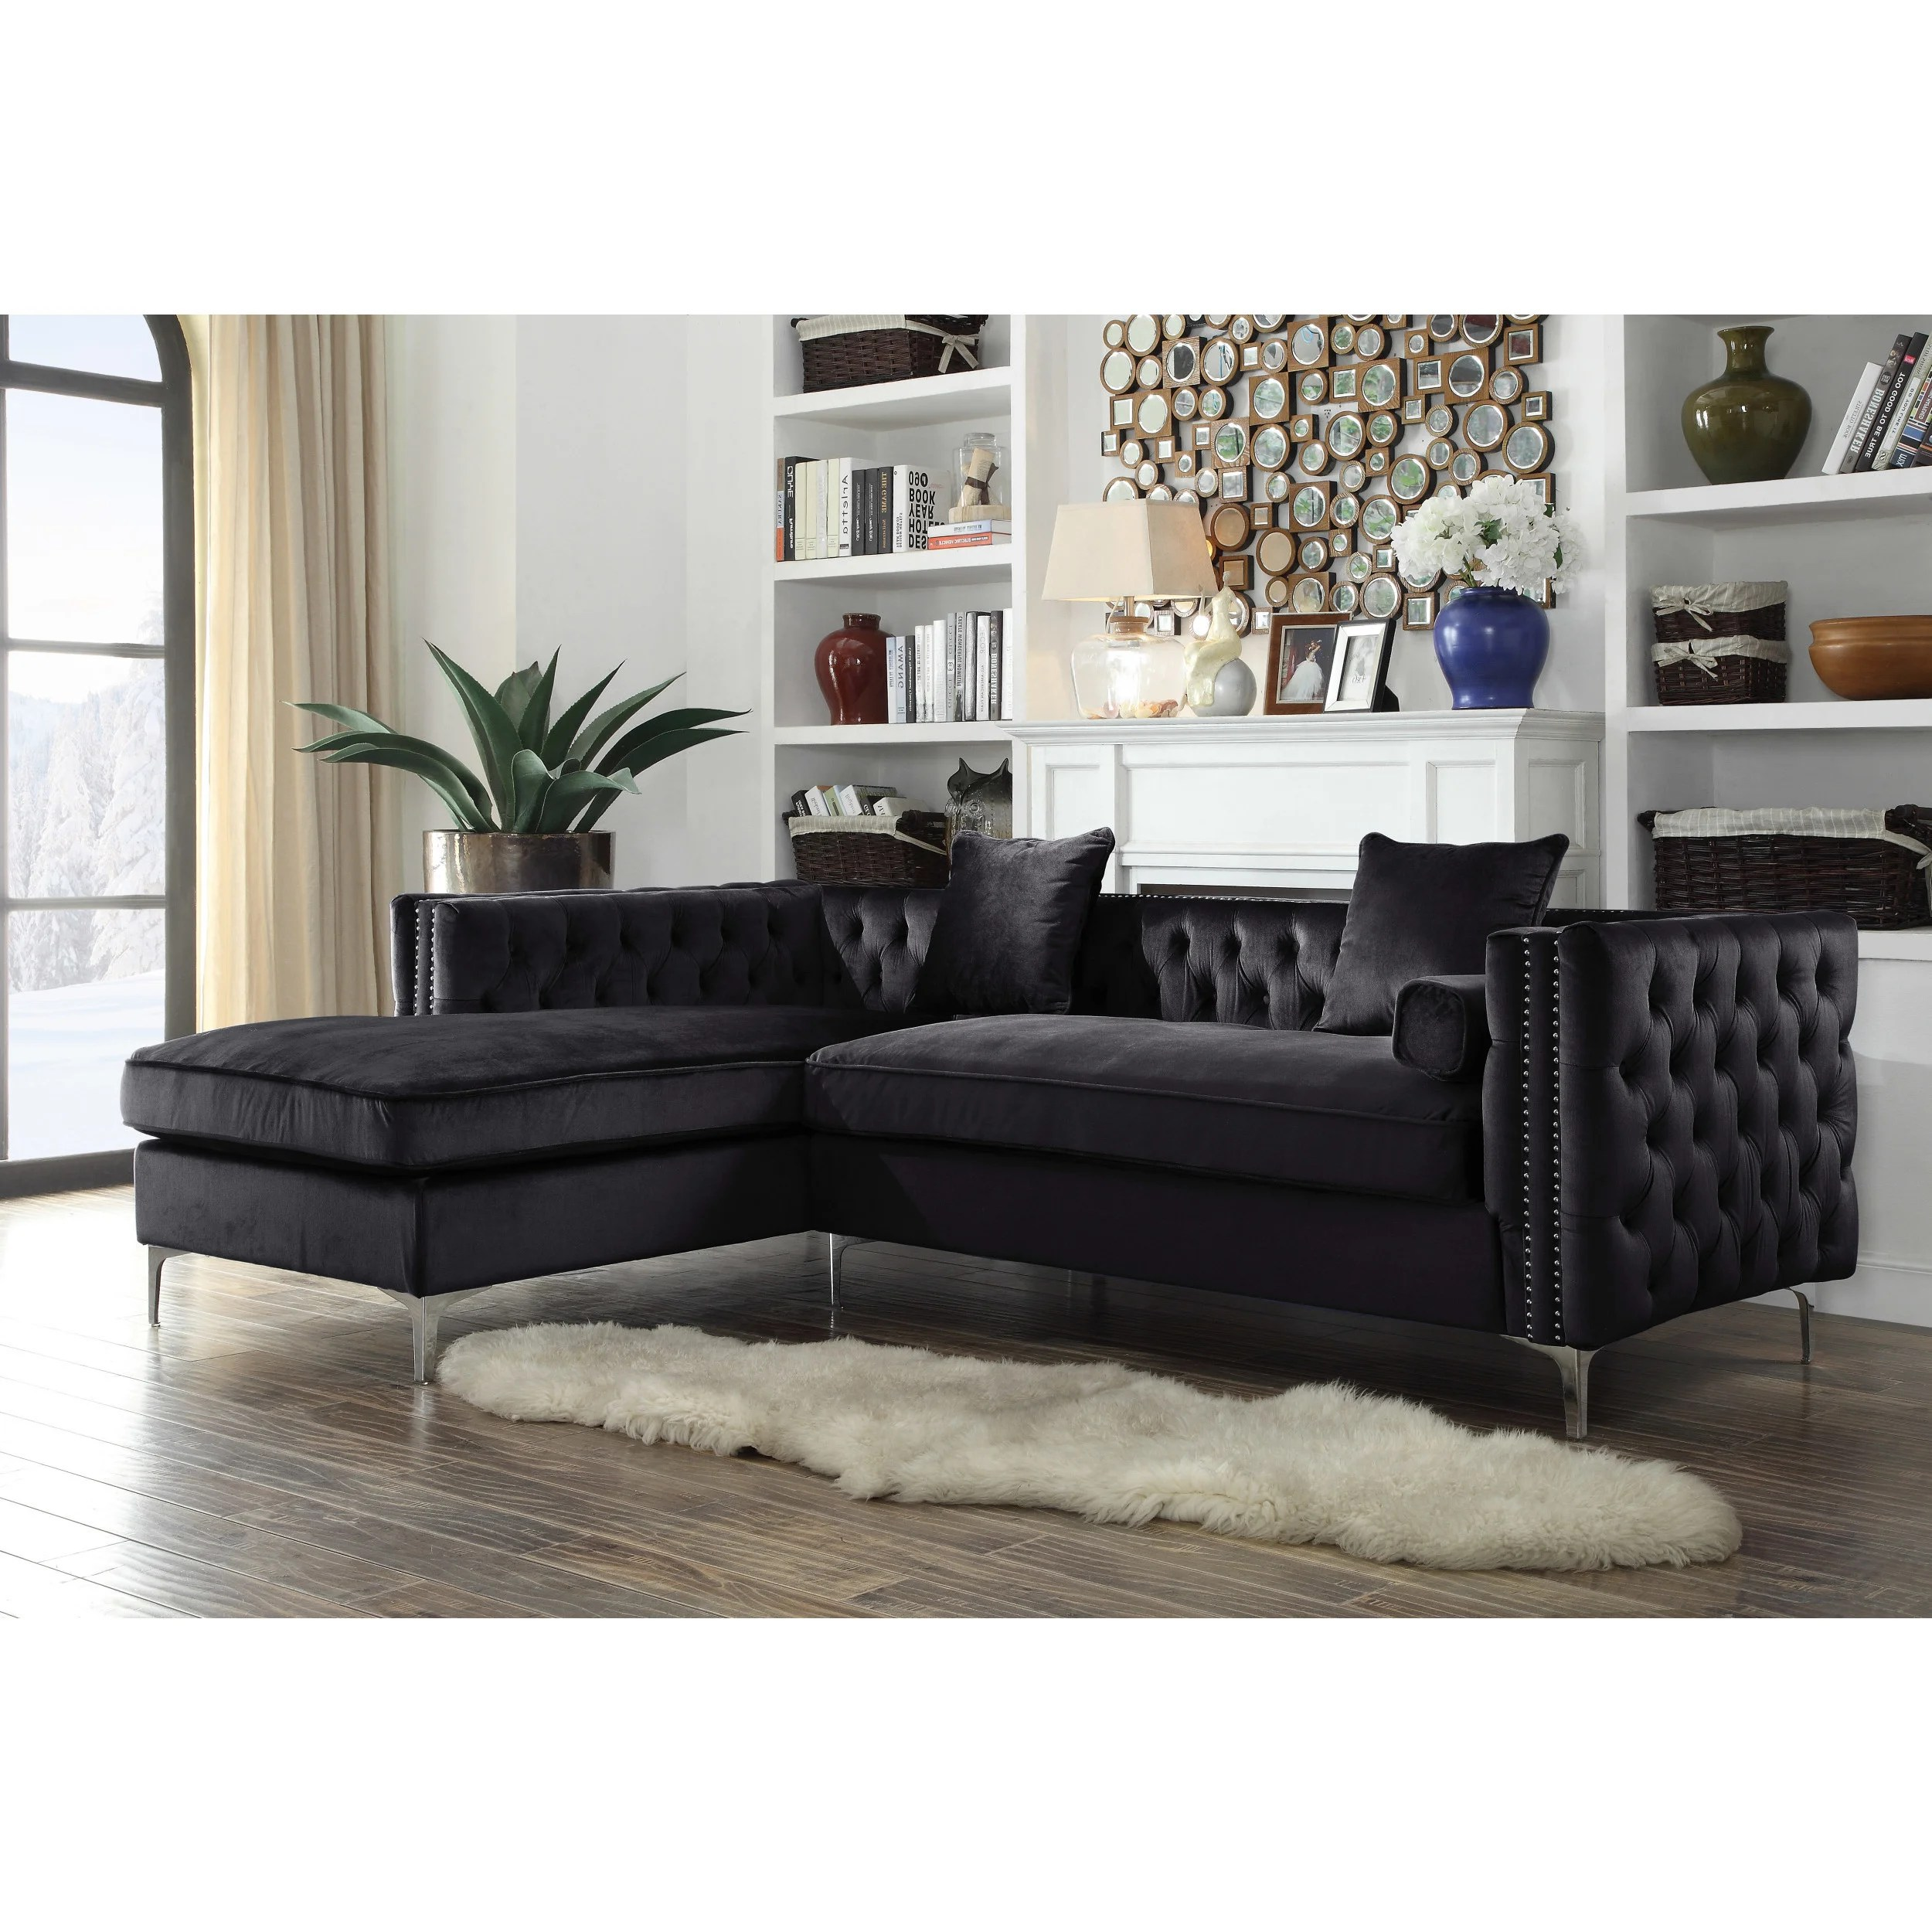 acme sectional sofa chocolate small pink sleeper buy velvet sofas online at overstock.com | our ...